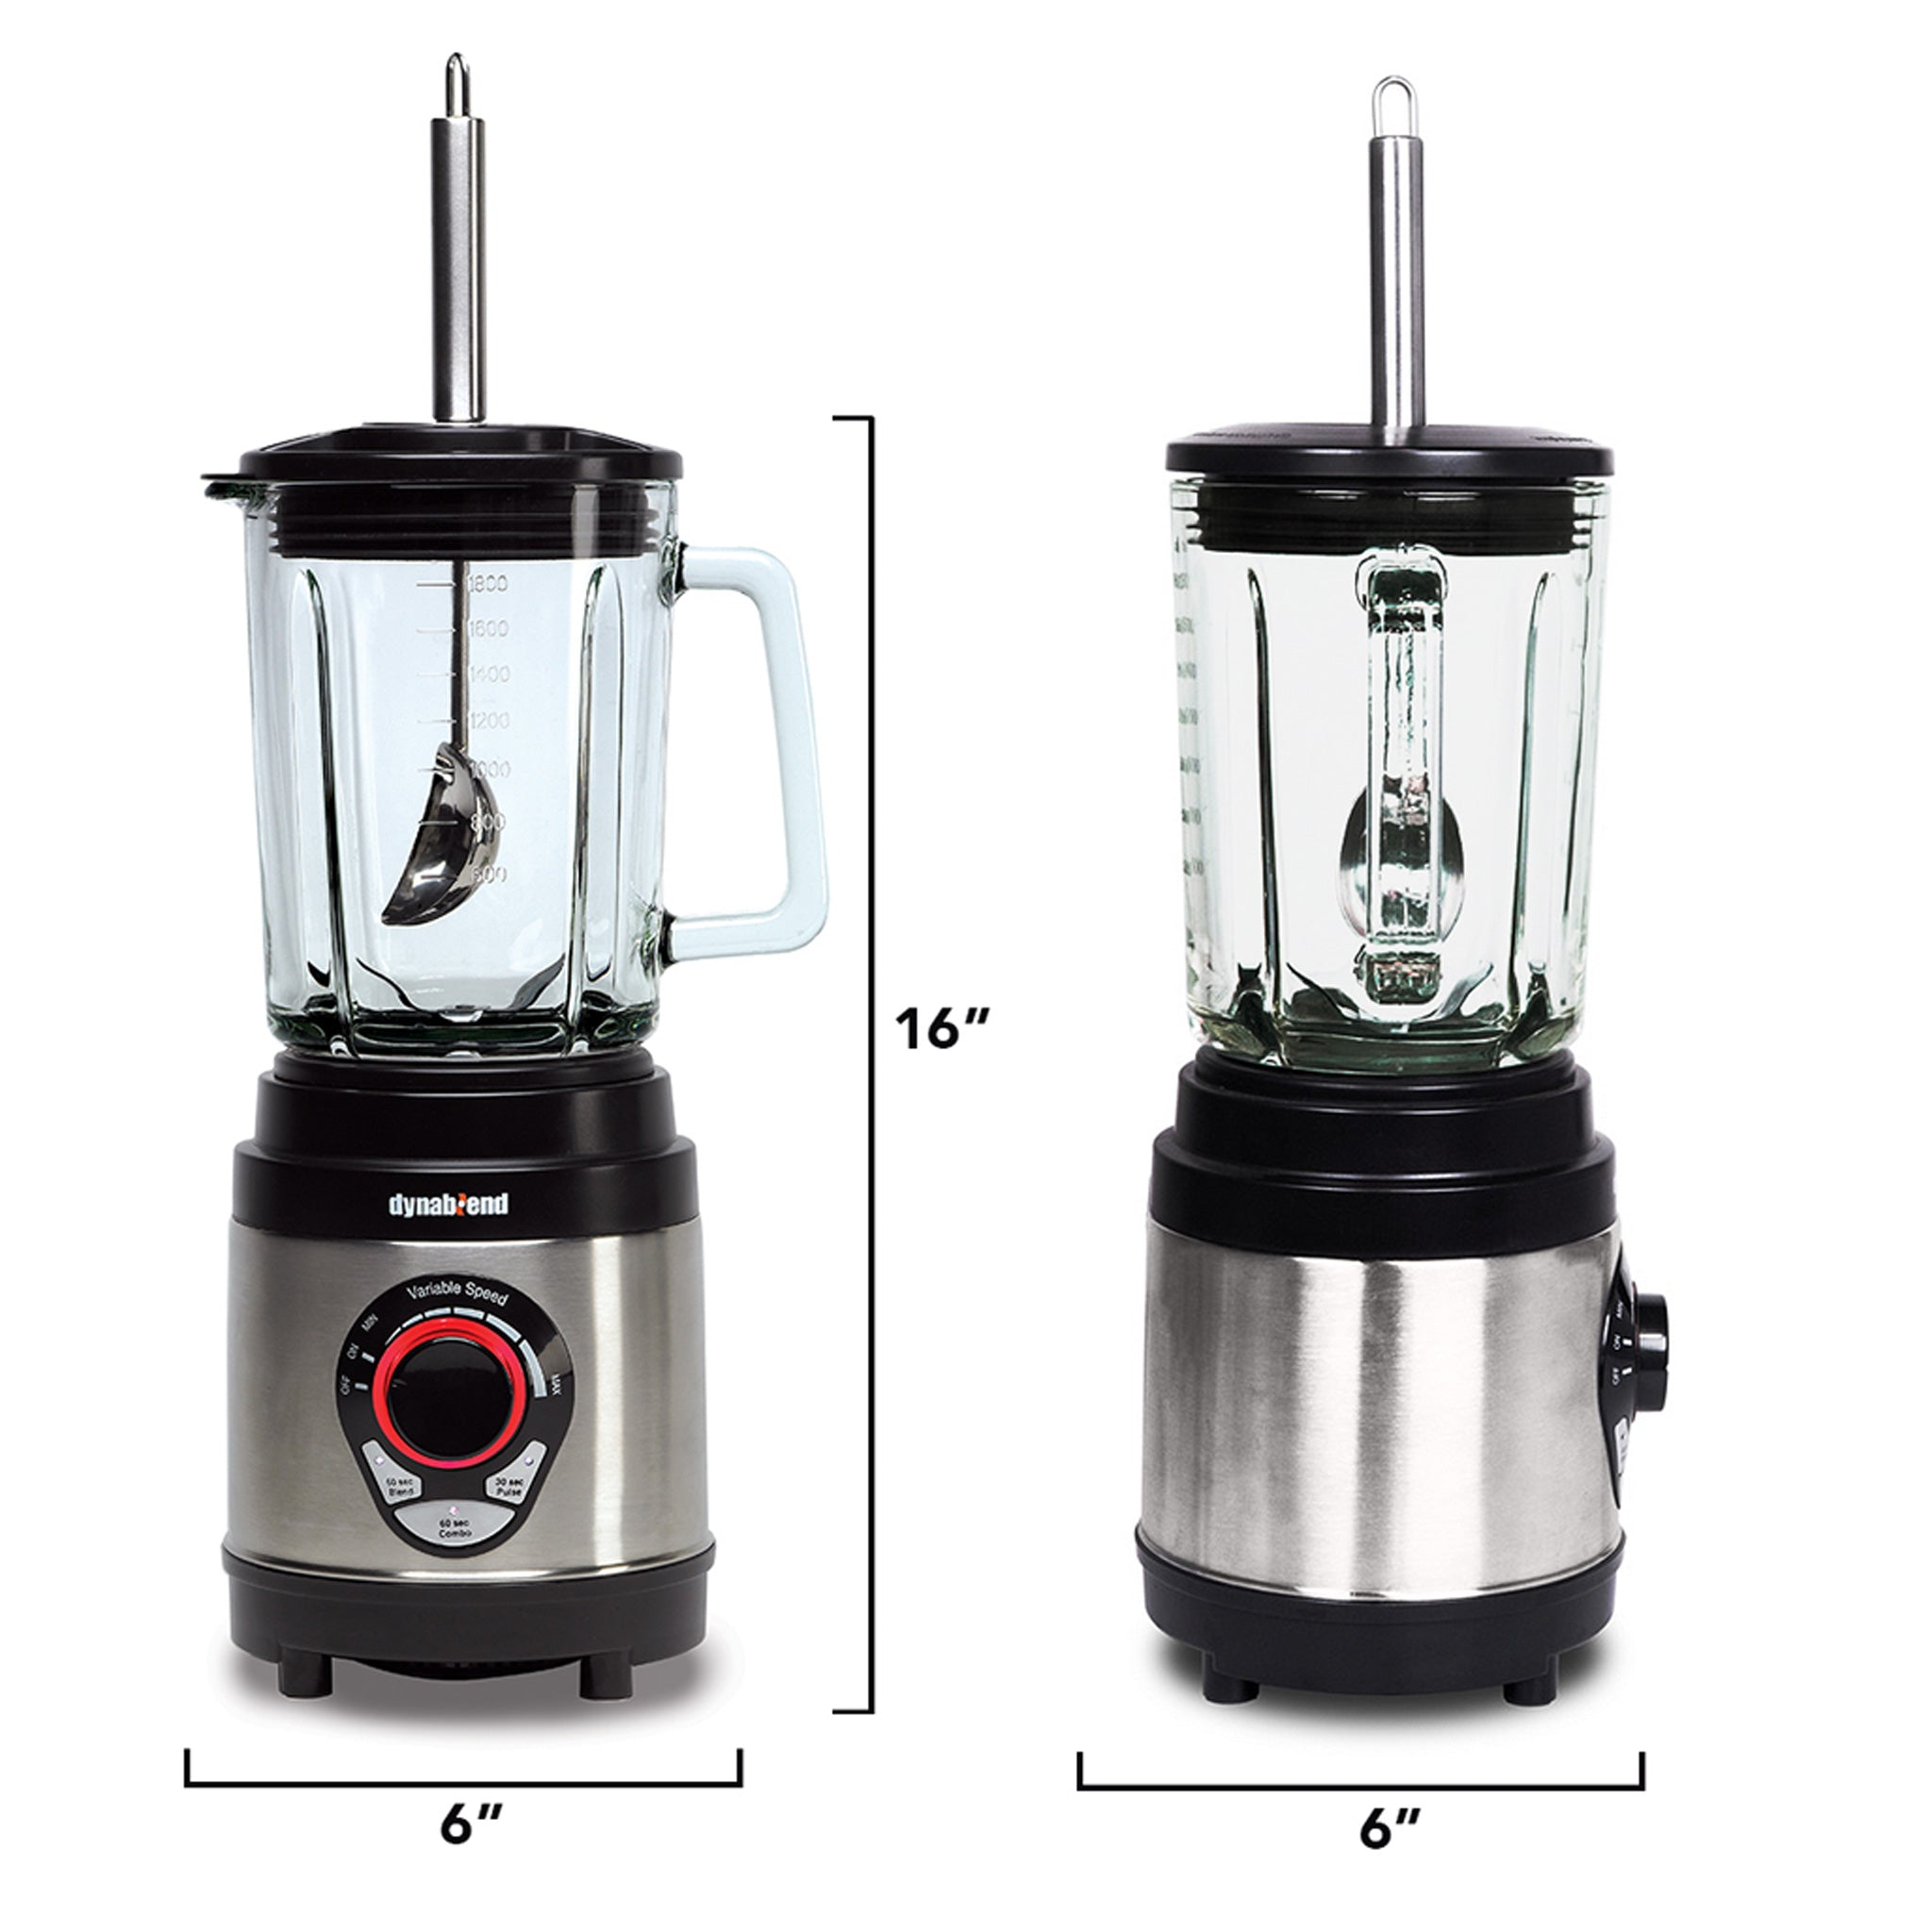 "Dynablend Clean High-Power Home Blender DB-950-A - Measurements 6"" W x 6"" D x 16"" H - Tribest"